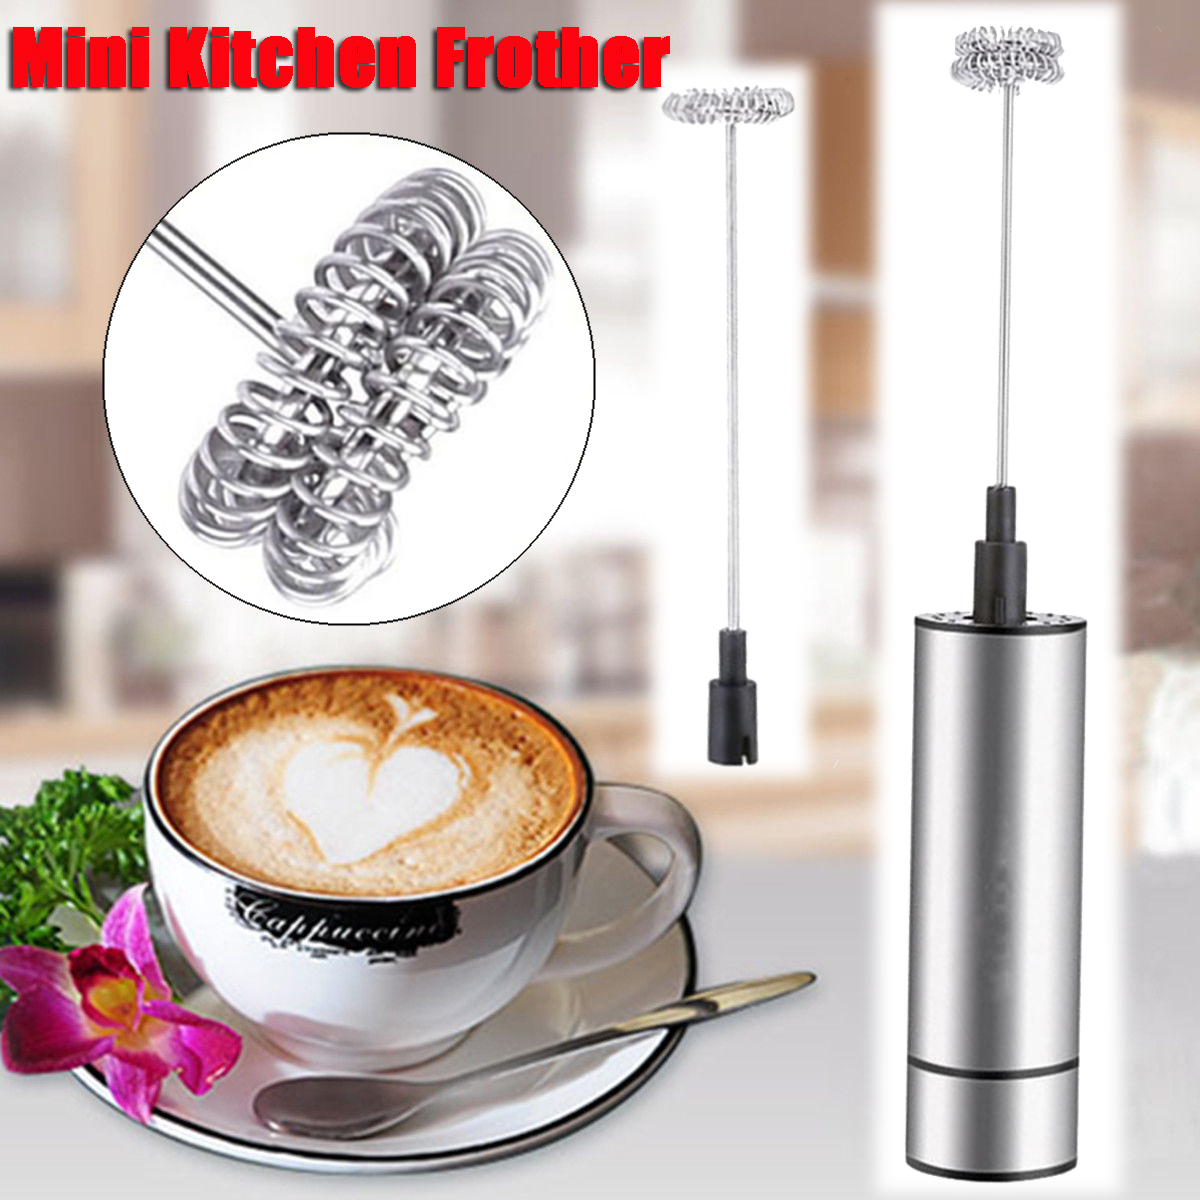 Handheld Electric Milk Frother Foamer Double Spring Triple Spring Whisk Head Agitator Blender Mixer Stirrer Coffee Maker Tool jiqi household electric milk foam bubble maker fancy coffee milk frother foamer diy egg cream mixer mini automatic blender whisk